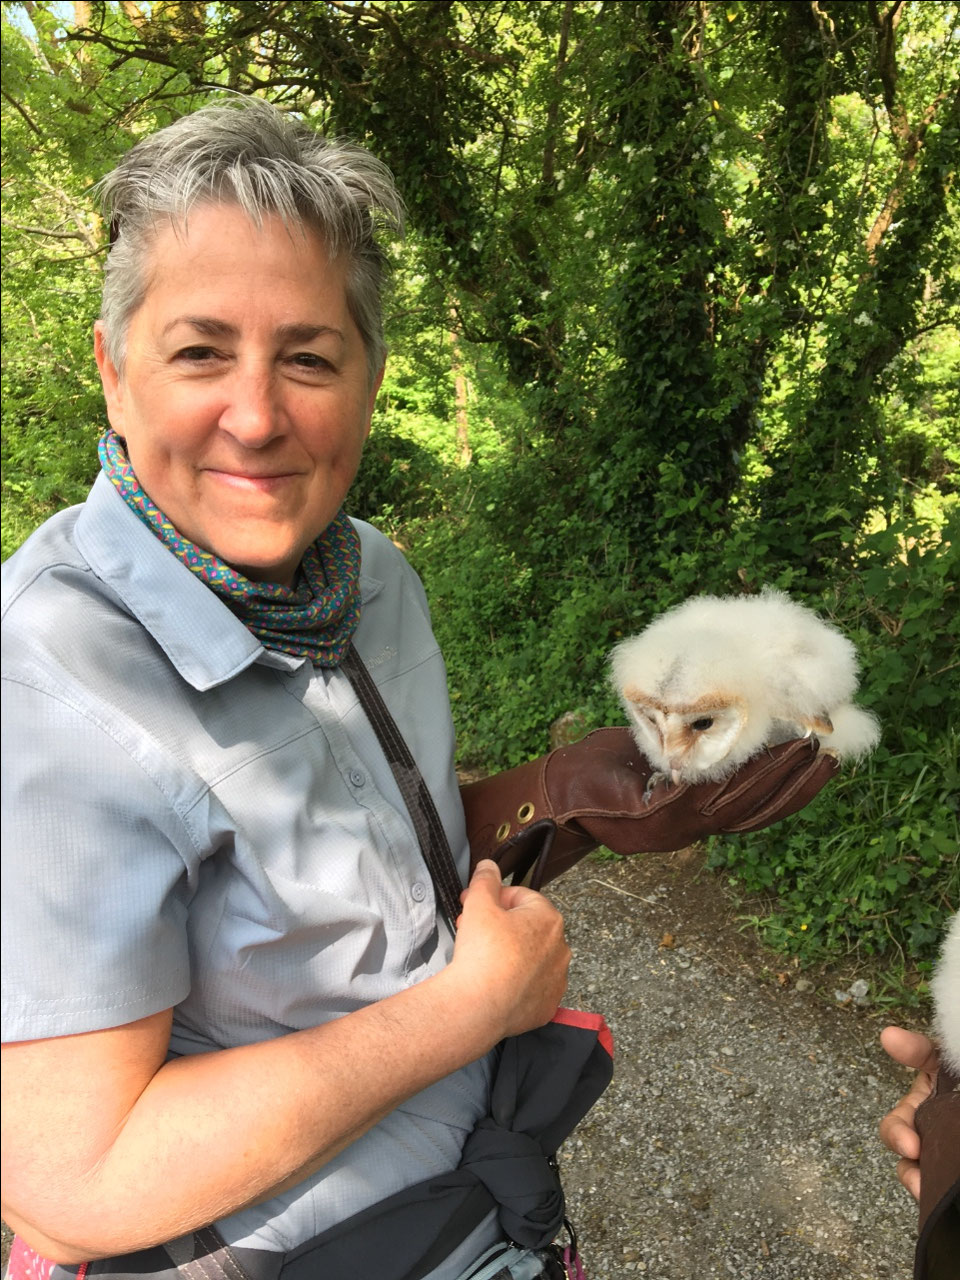 Me with a 4 week old baby barn owl